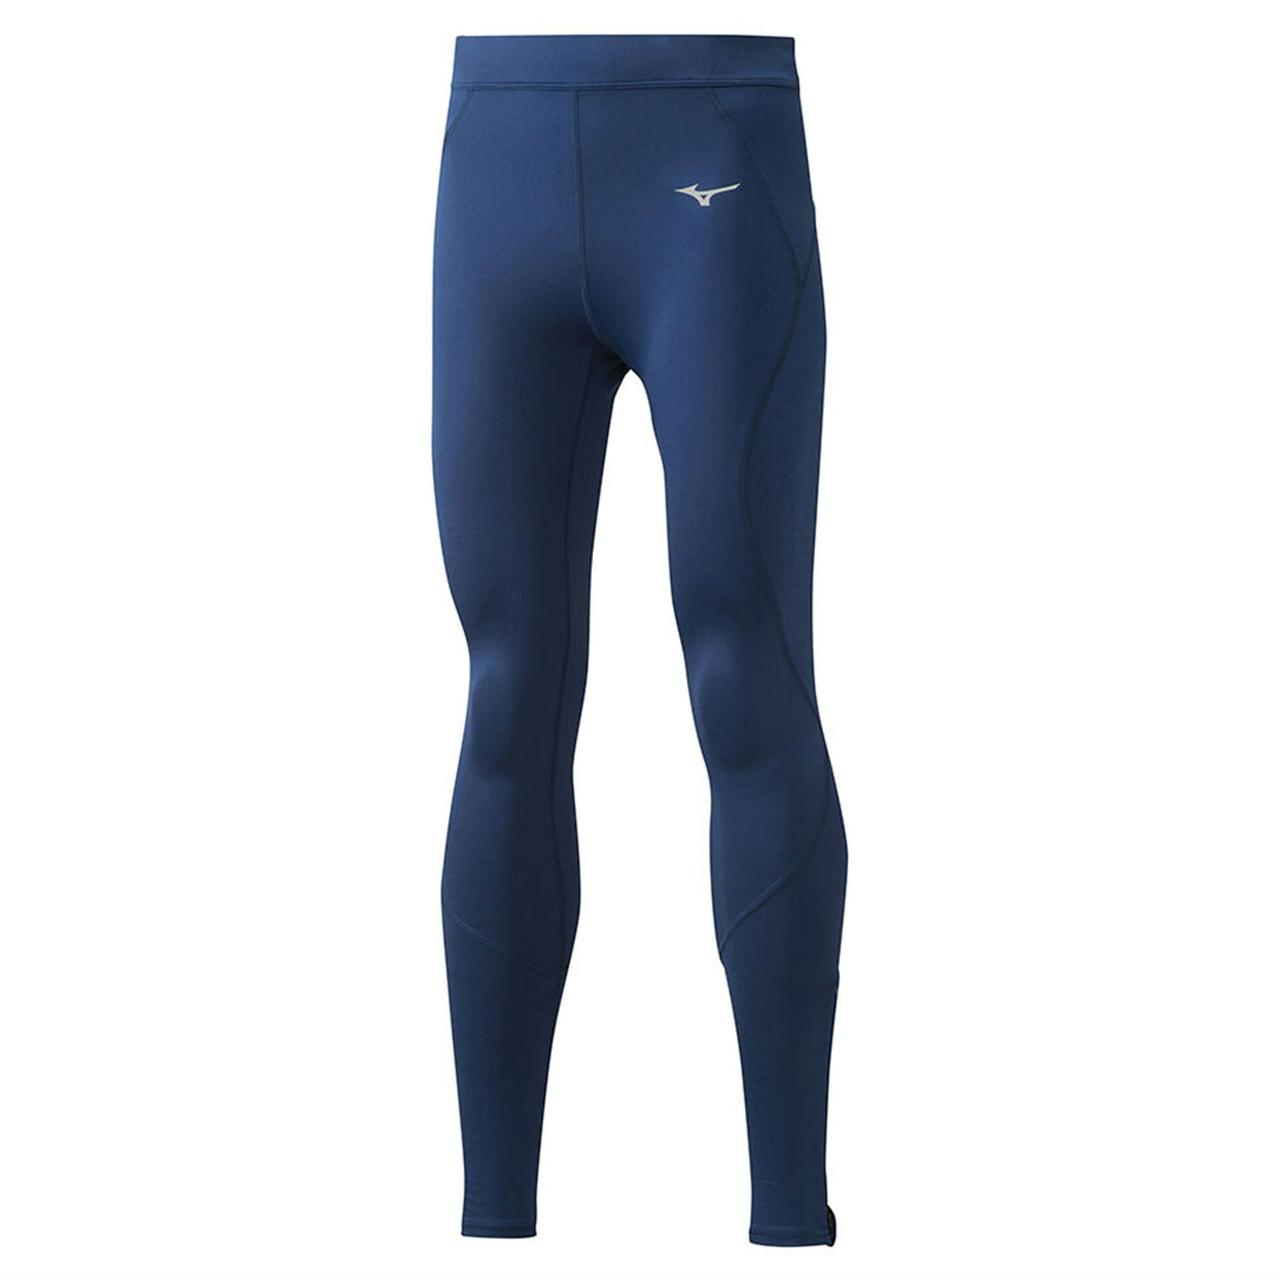 Тайтсы для бега Mizuno Warmalite Tight W (J2GB0710-15)